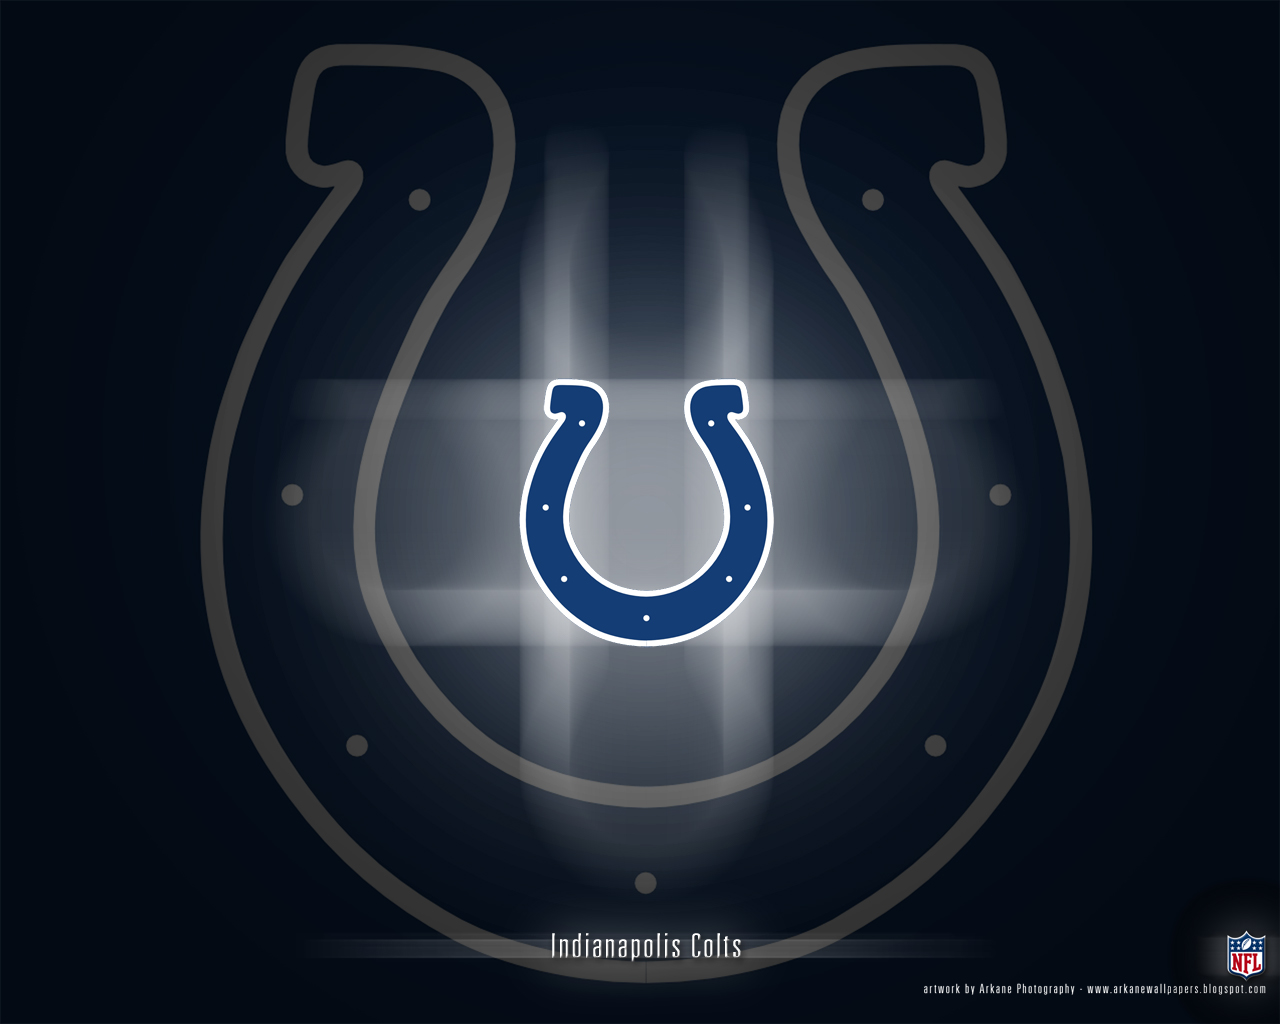 High Definition - Indianapolis Colts Phone - Adorable Indianapolis